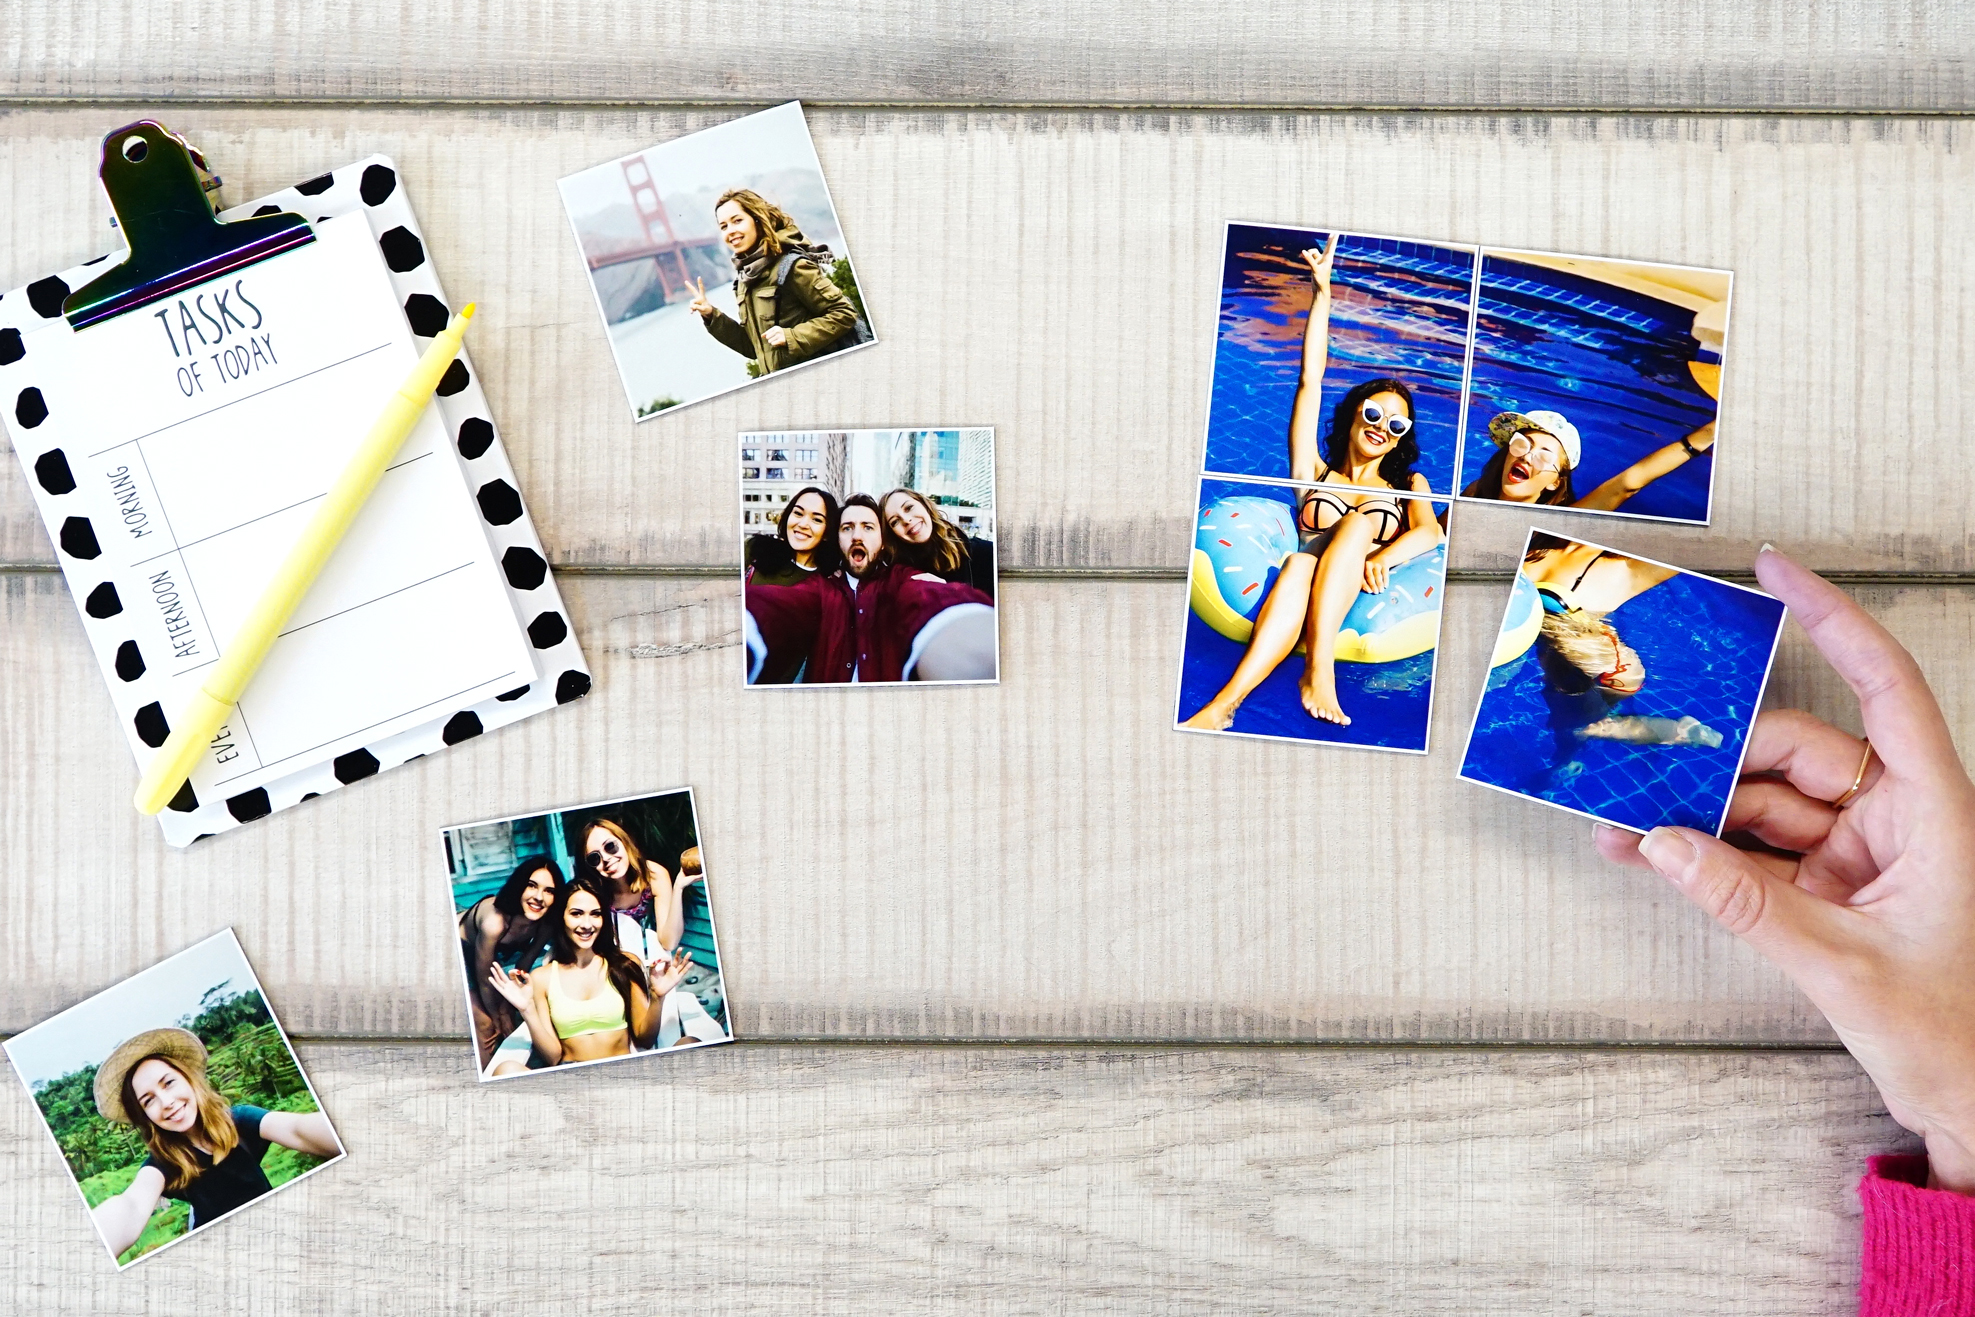 Printiki 4 Medium Magnets  Each large magnet measures: 3 x 3 inches - 7,5 x 7,5 cm